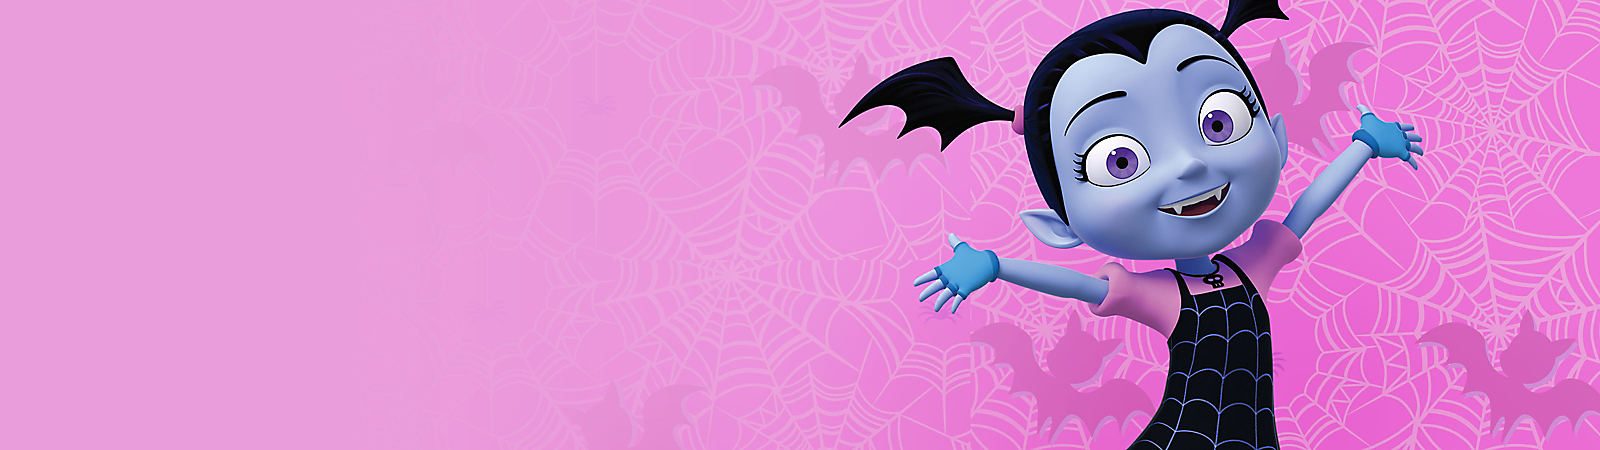 Background image of Vampirina